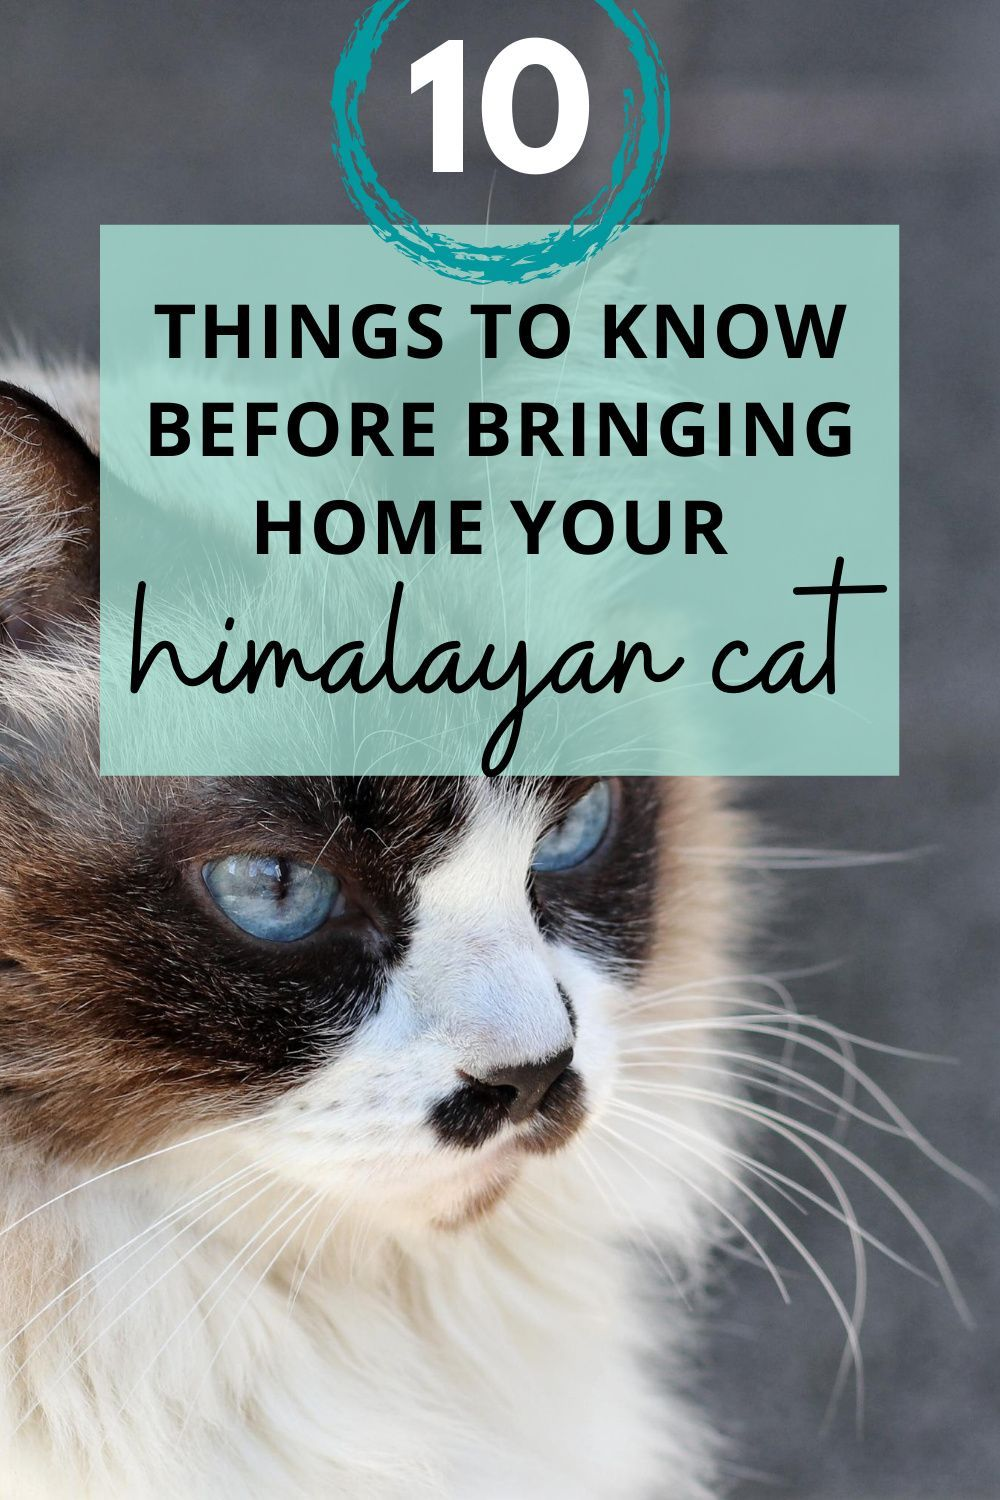 10 Things To Know Before Bringing Home Your New Himalayan Cat Kritter Kommunity Himalayan Cat Cats Cat Advice